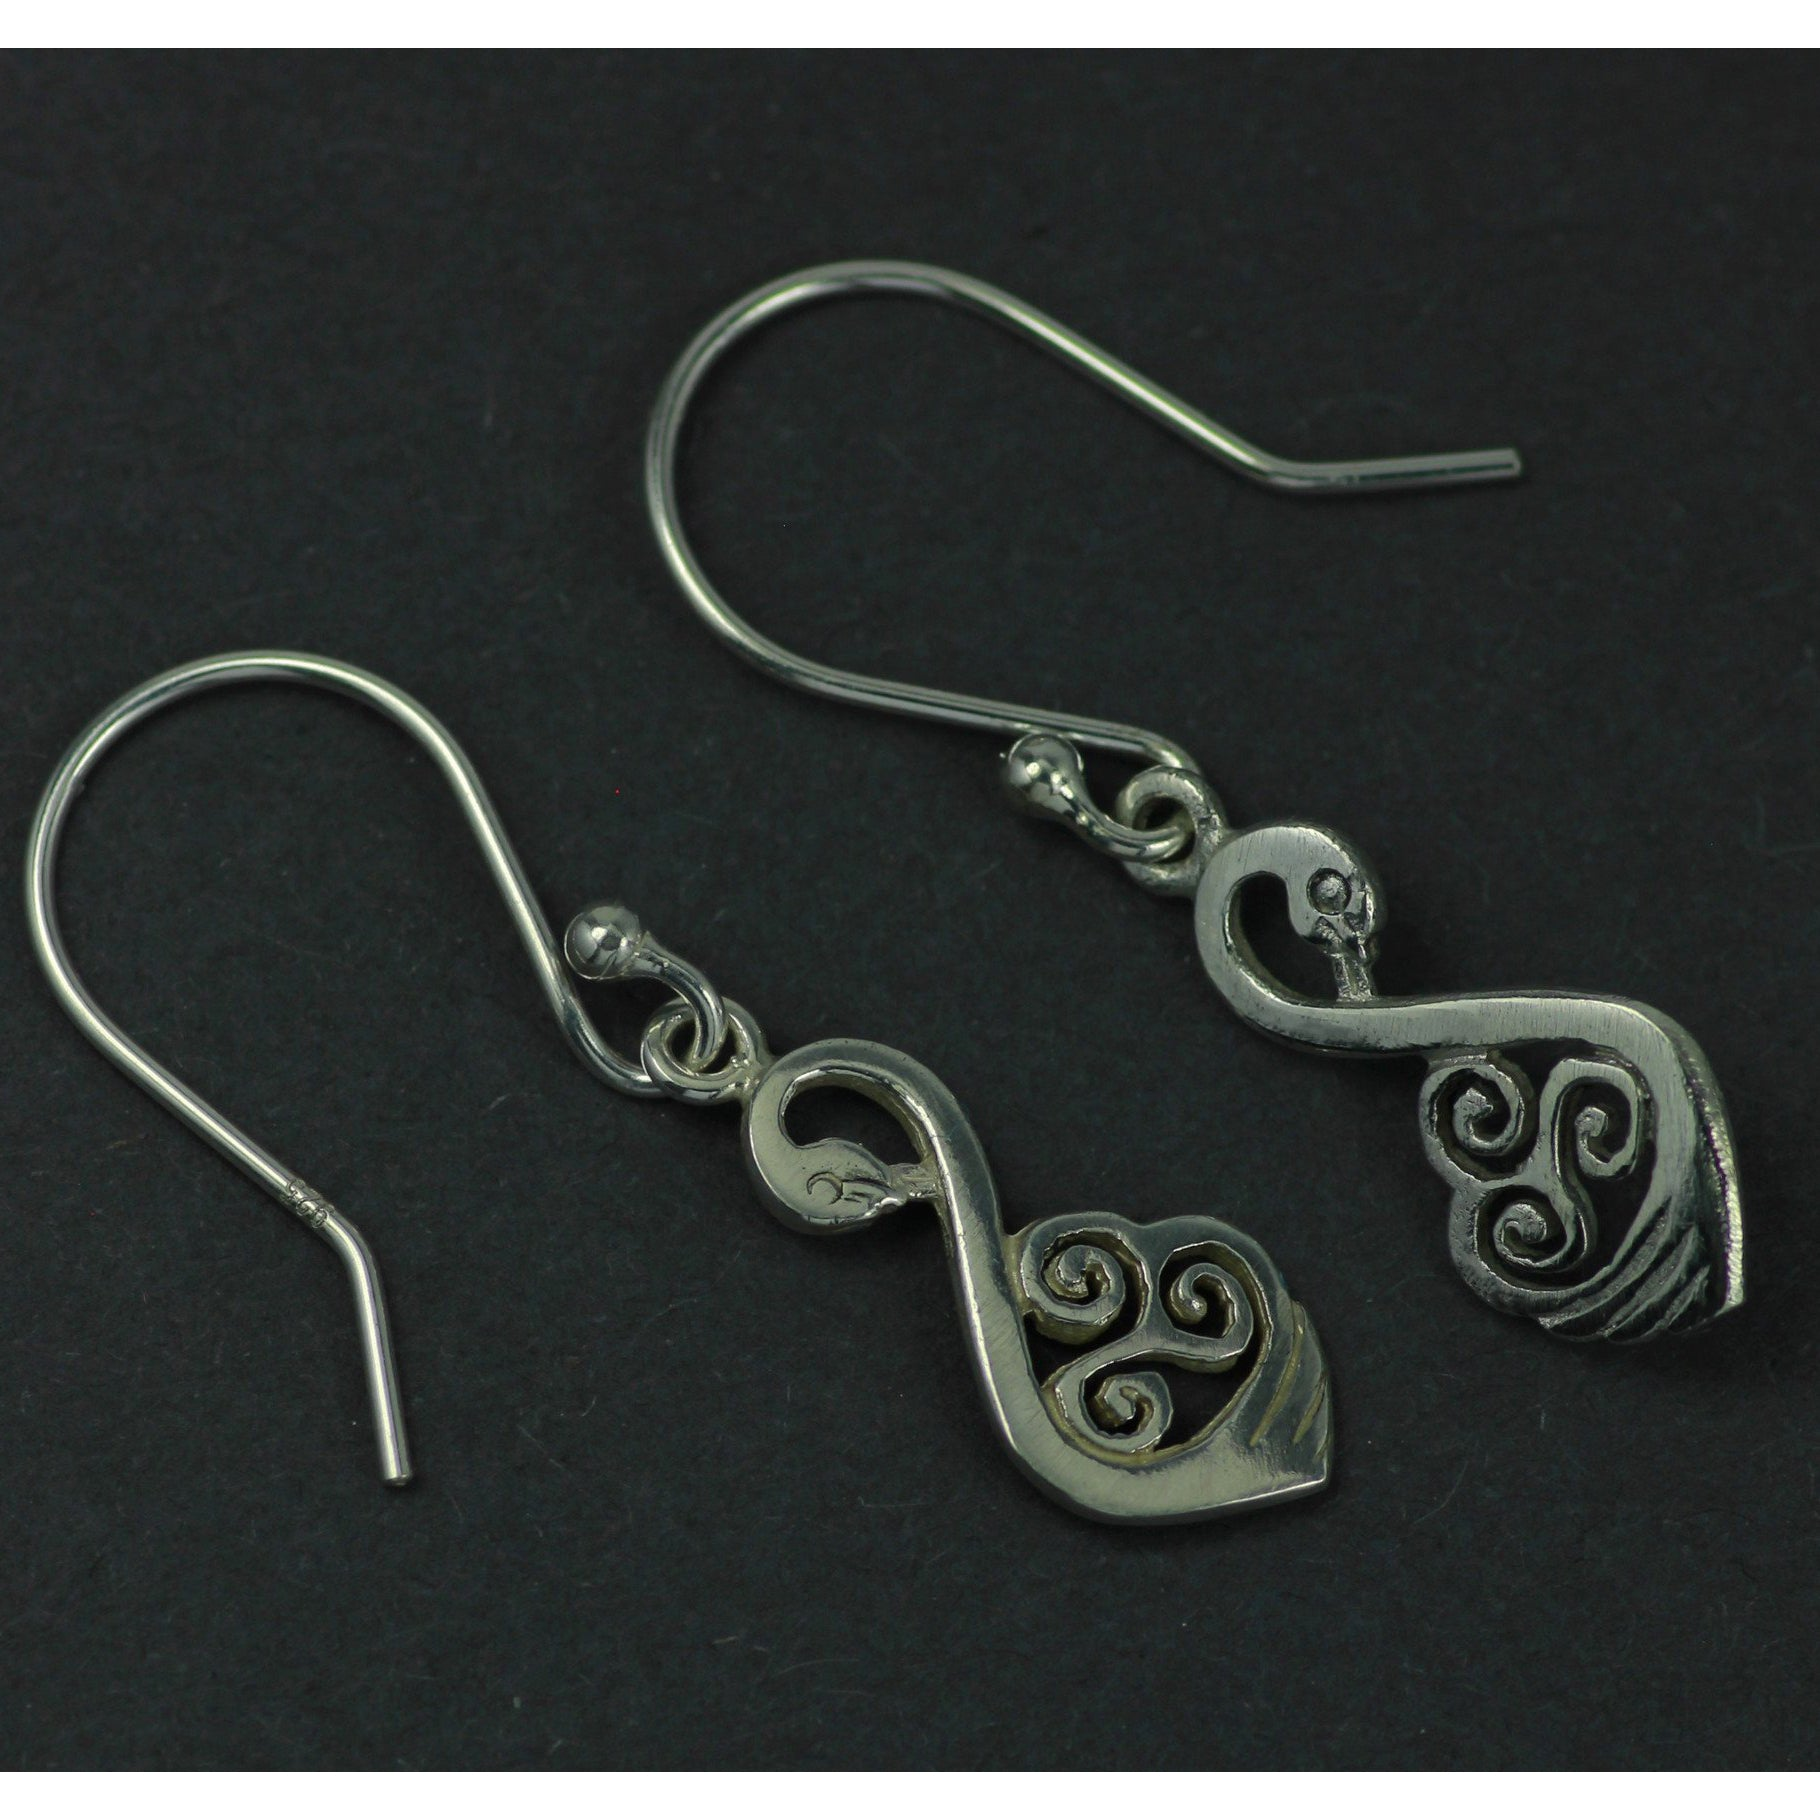 Celtic Swan Drop Earrings, available as a jewelry set with matching pendant! A beautiful sterling silver gift for a special someone!